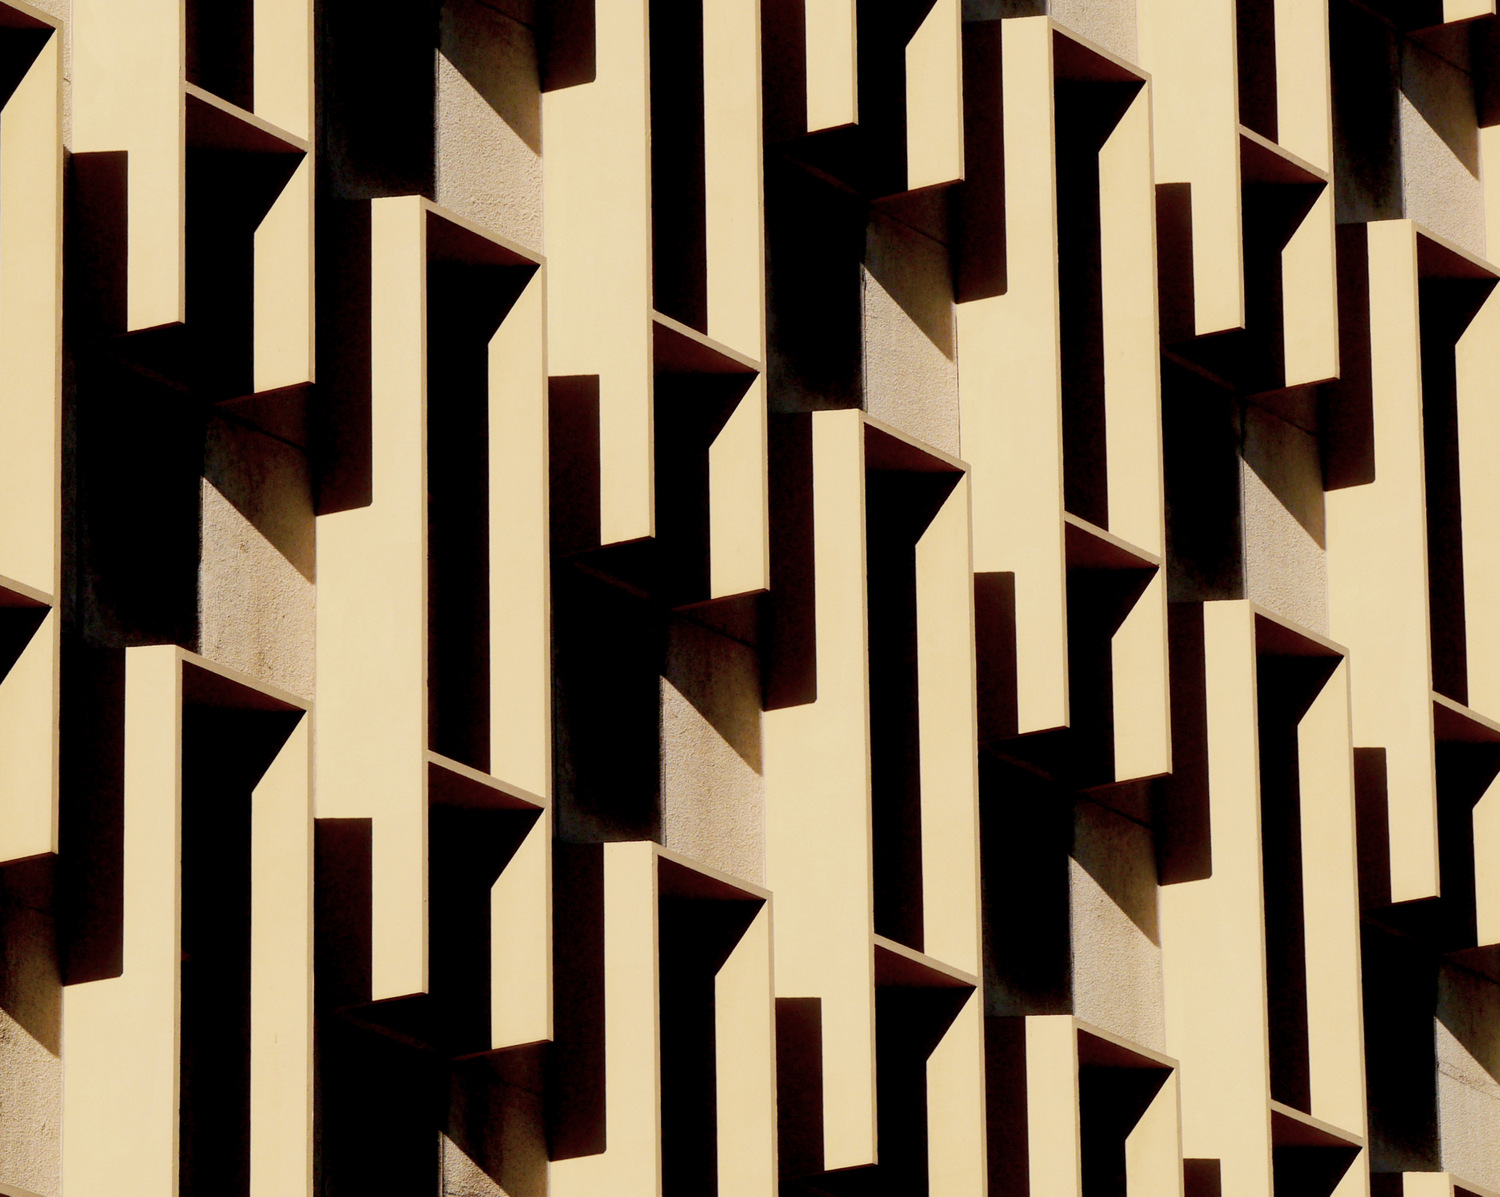 Guntis_Lauzums_Abstract Series_State Building Abstract_6.JPG